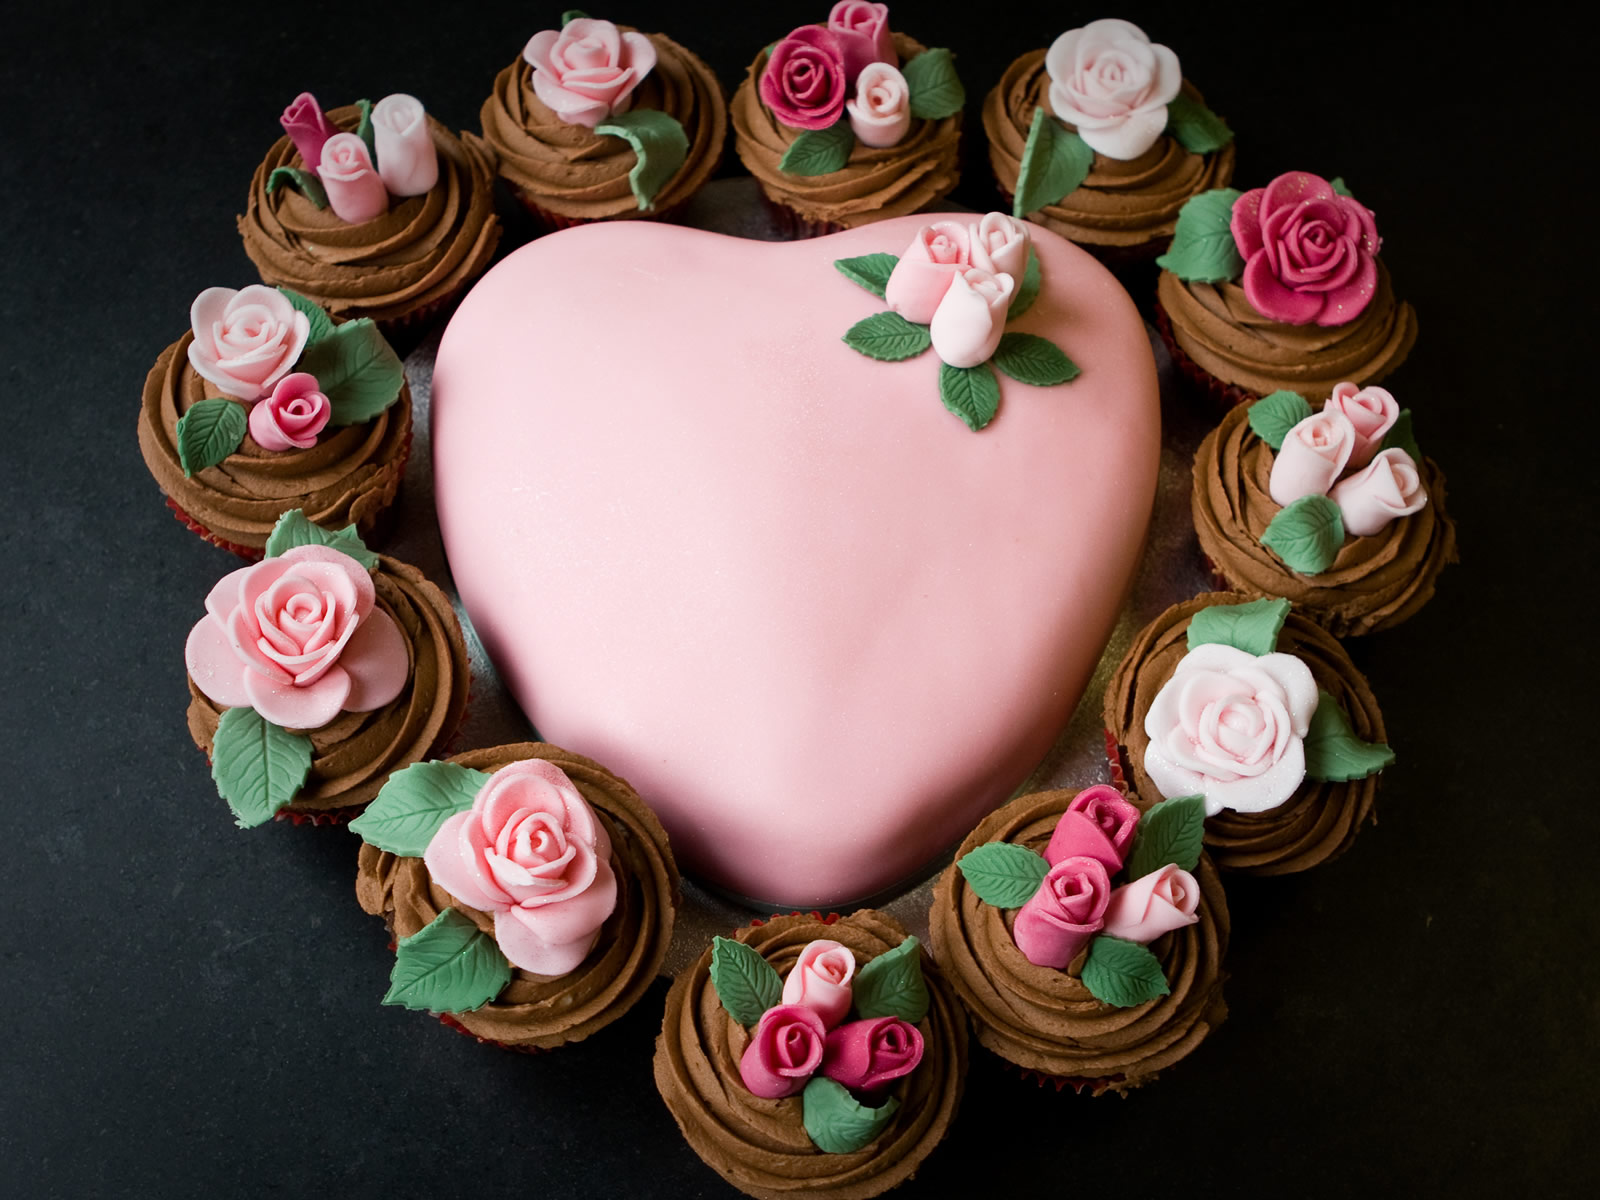 android phones wallpapers: android wallpaper heart shaped cake